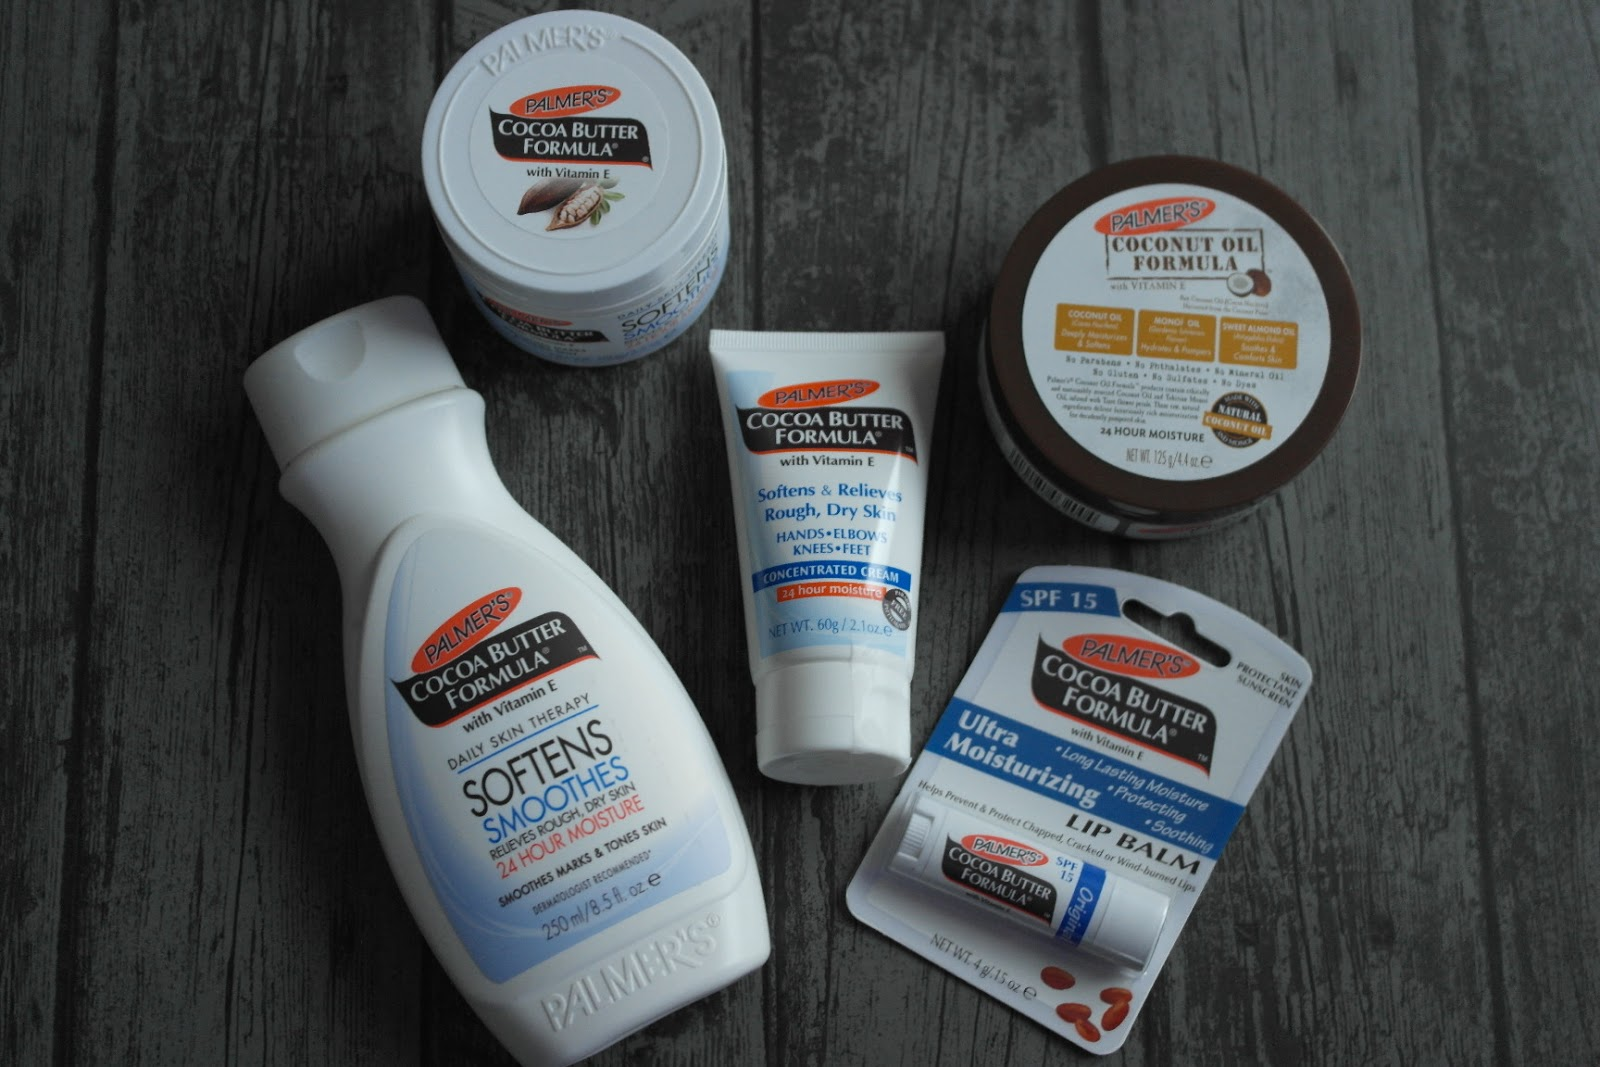 Palmer's cocoa butter formula review